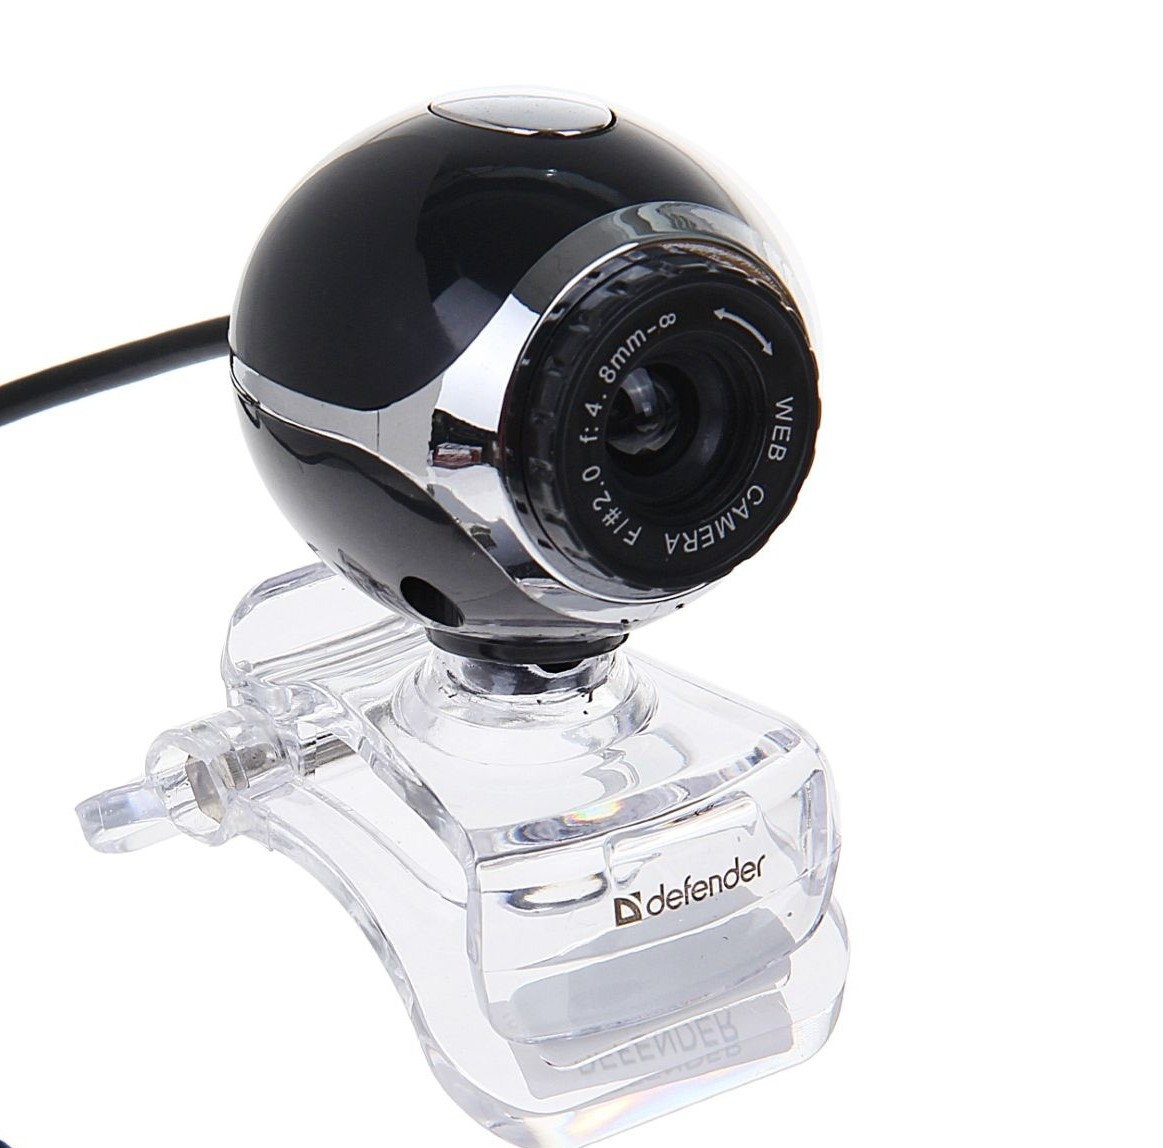 Digital Web Camera Defender C-090